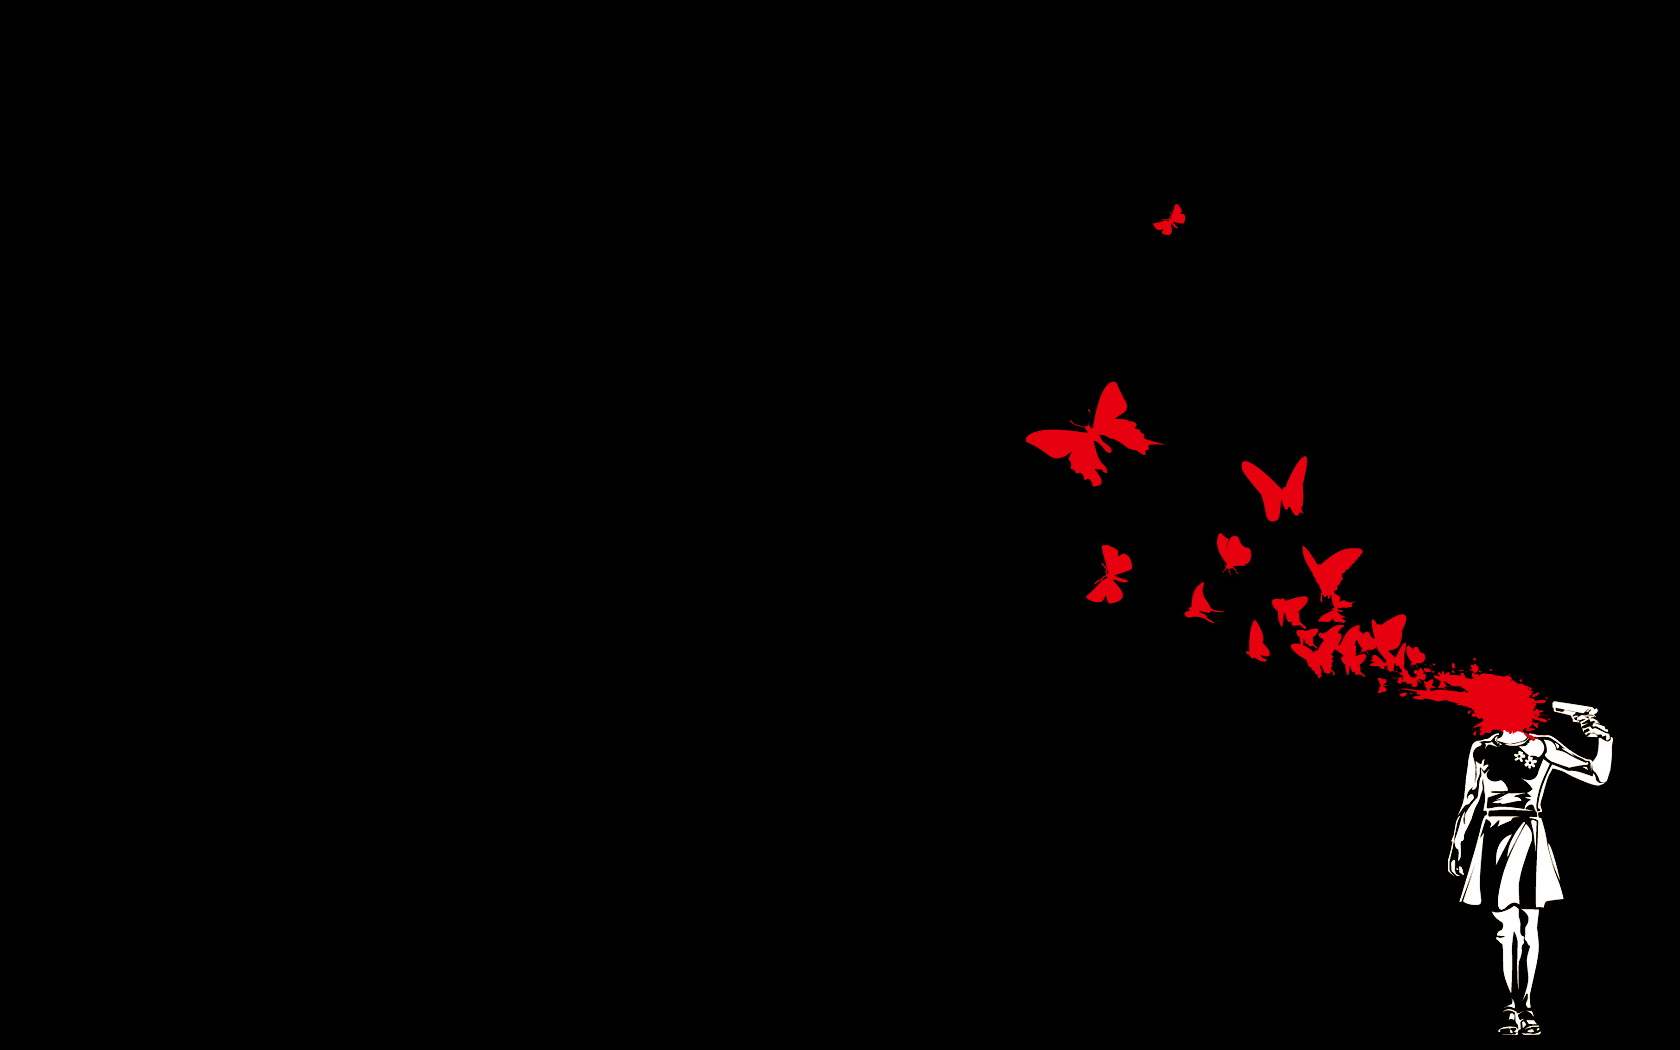 Free Download Black Red Wallpaper 1680x1050 Black Red Butterfly Suicide 1680x1050 For Your Desktop Mobile Tablet Explore 40 Red And Black Anime Wallpaper Red And Black Anime Wallpaper Red